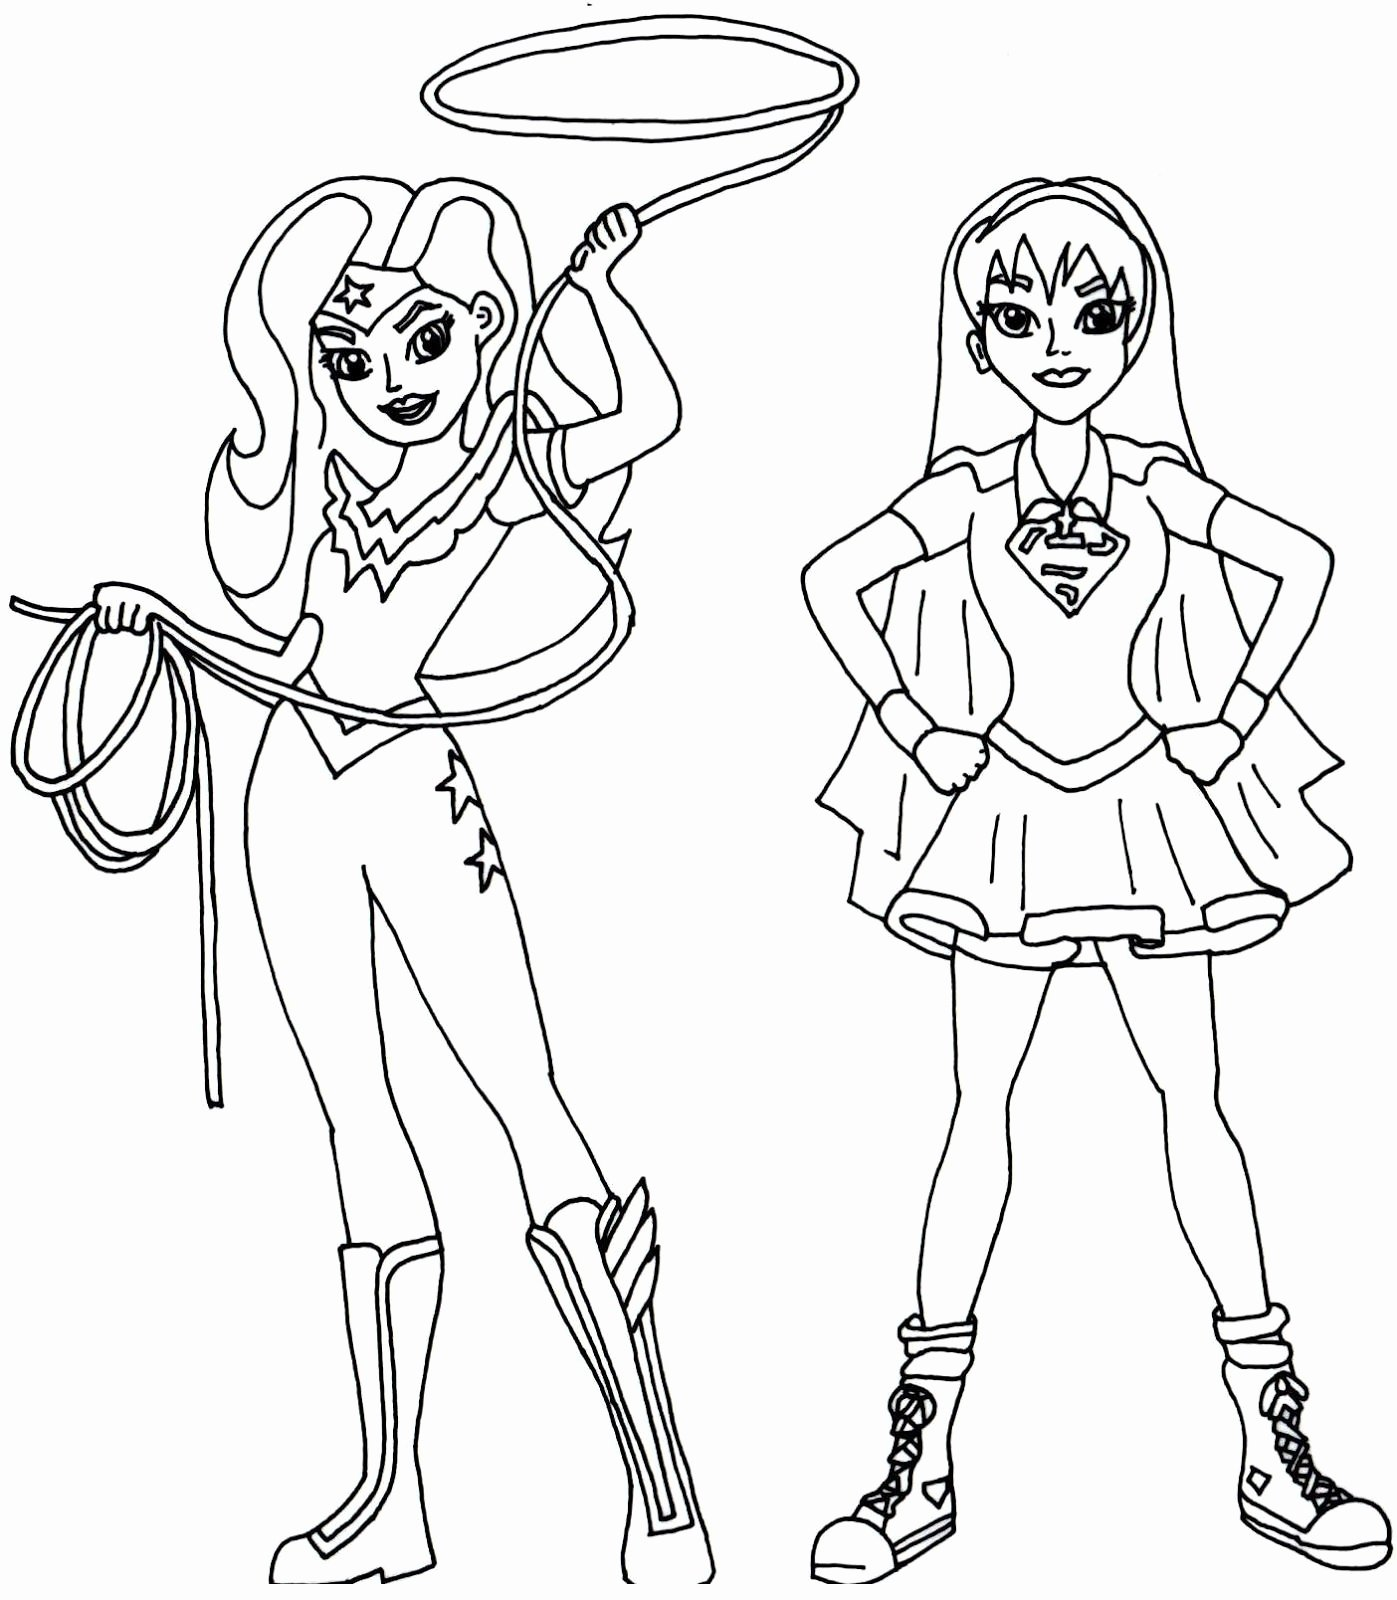 Female Superhero Coloring Pages Lovely Free Printable Super Hero High Coloring Page for Wonder Woman and Supergirl